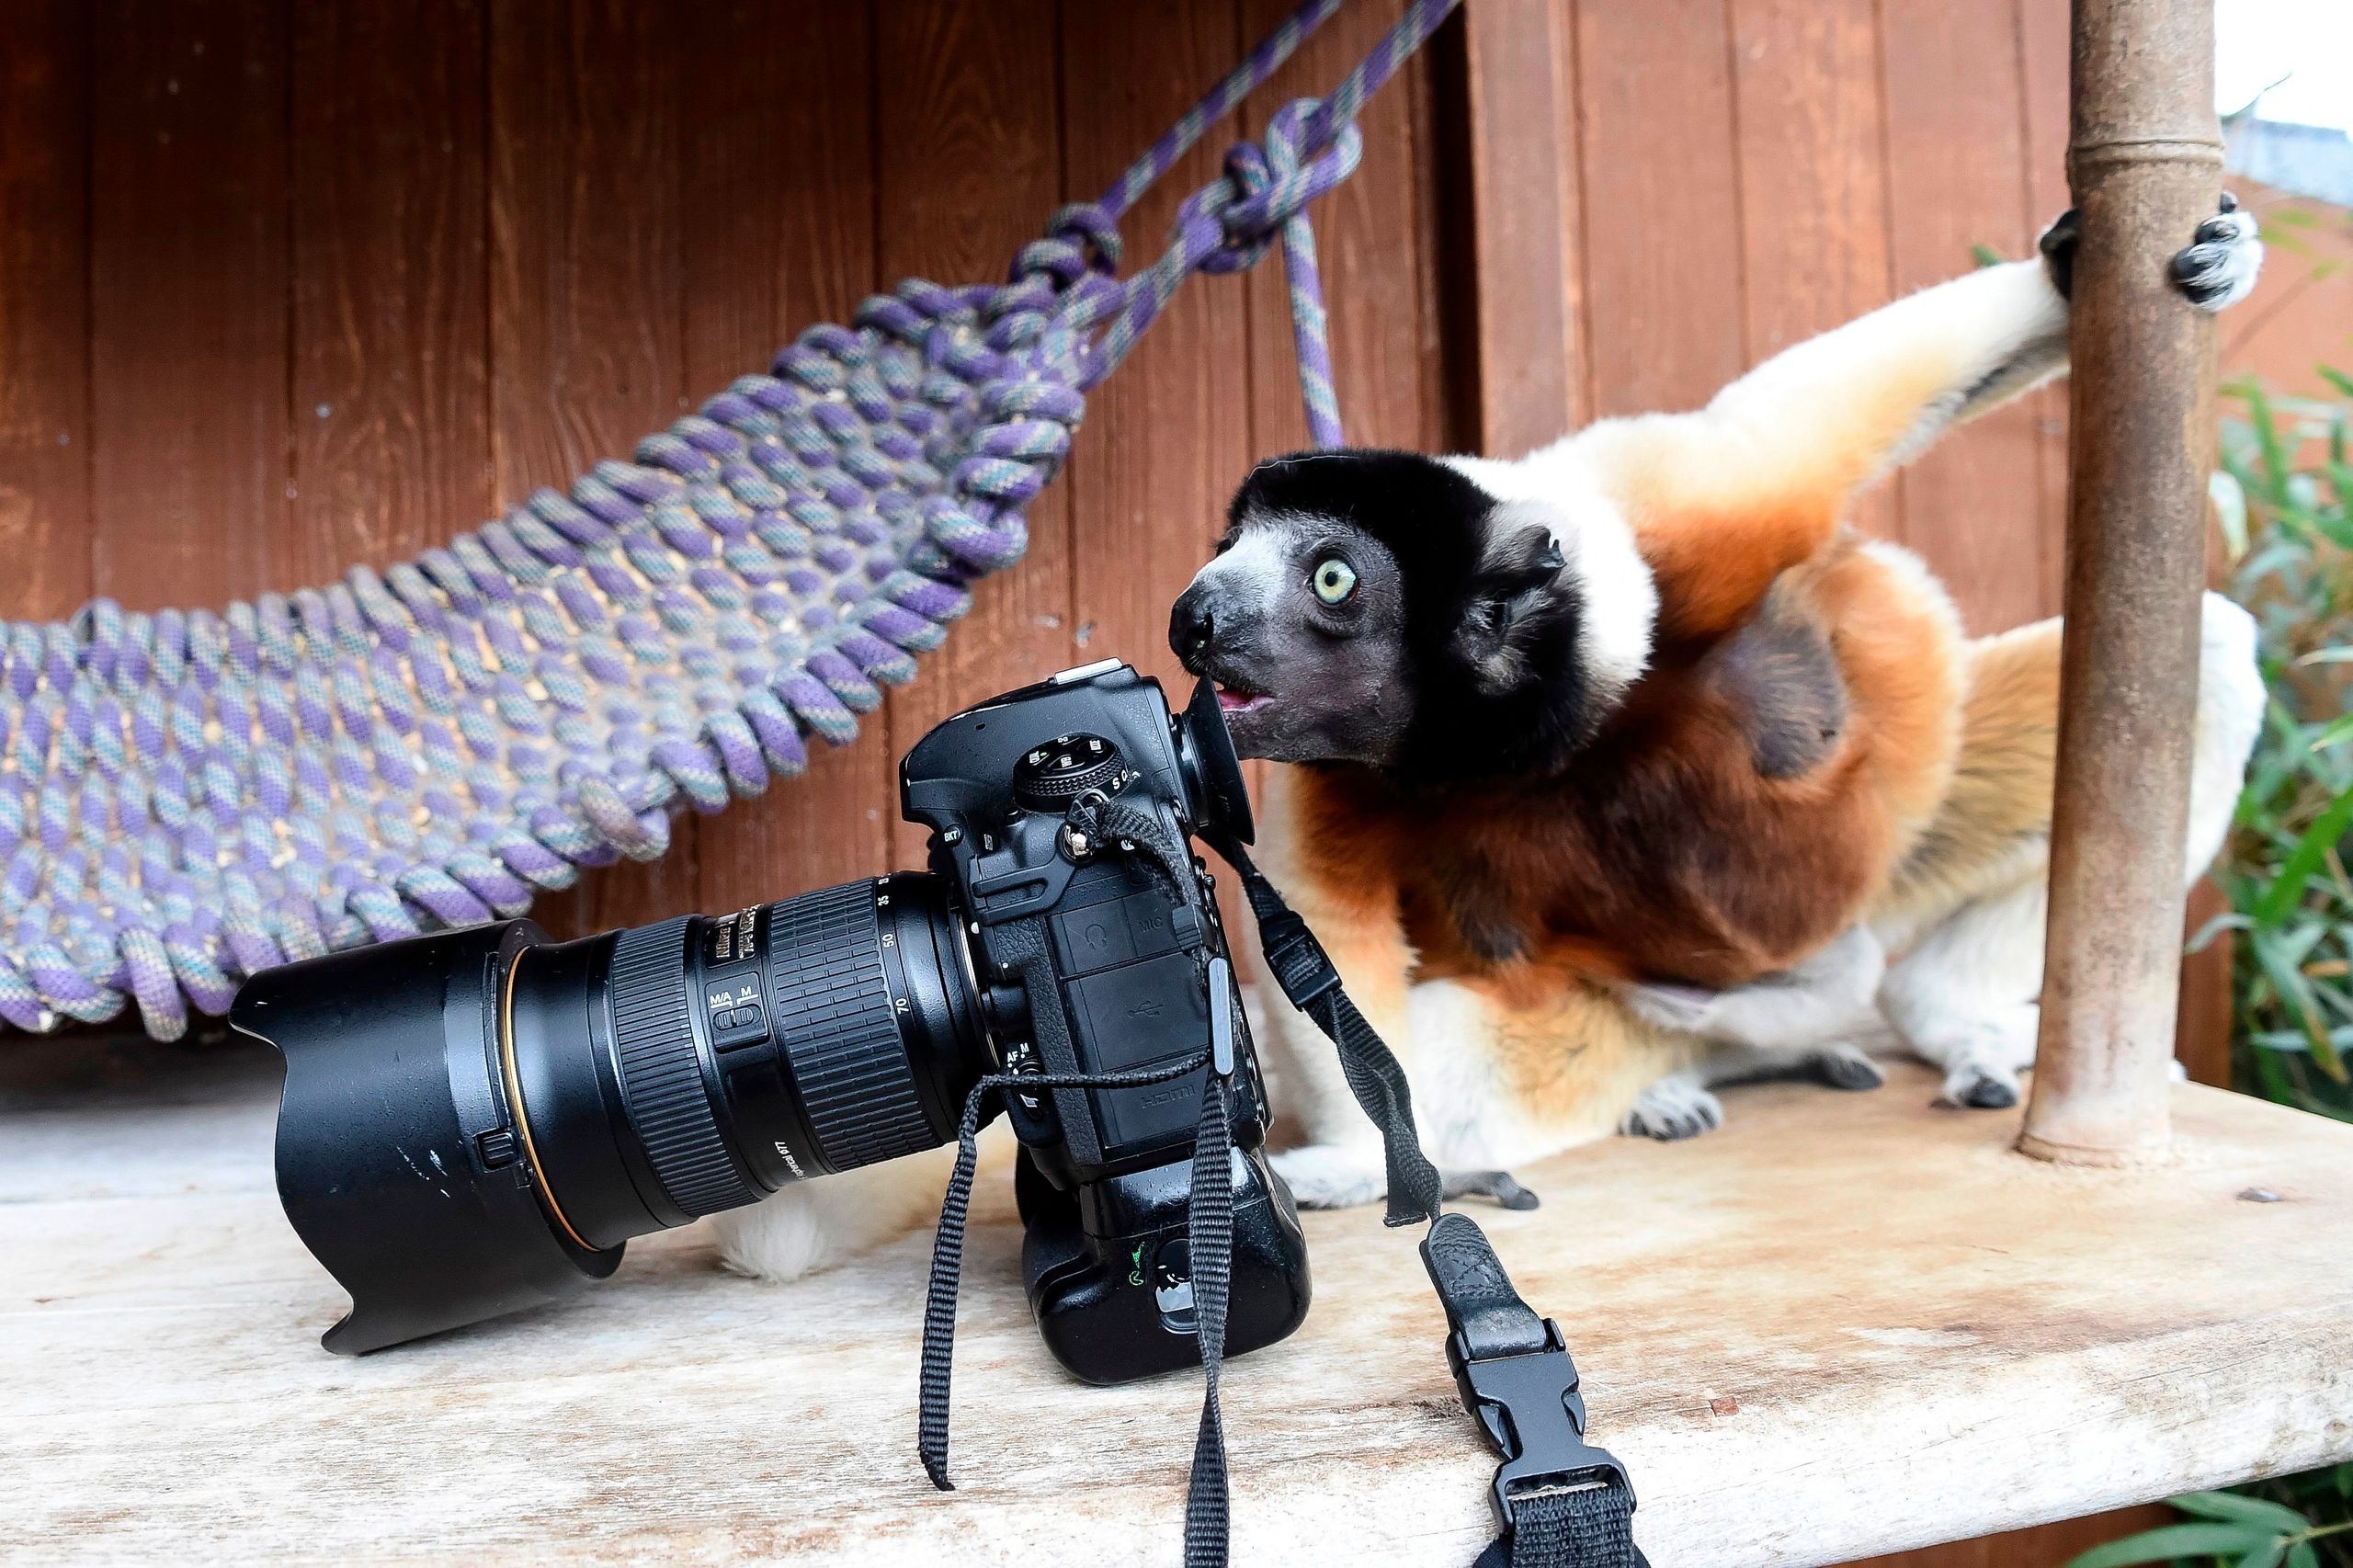 Poppy, a female Crowned sifaka, inspects a photographer's camera in the enclosure at the zoo of Mulhouse, eastern France, on